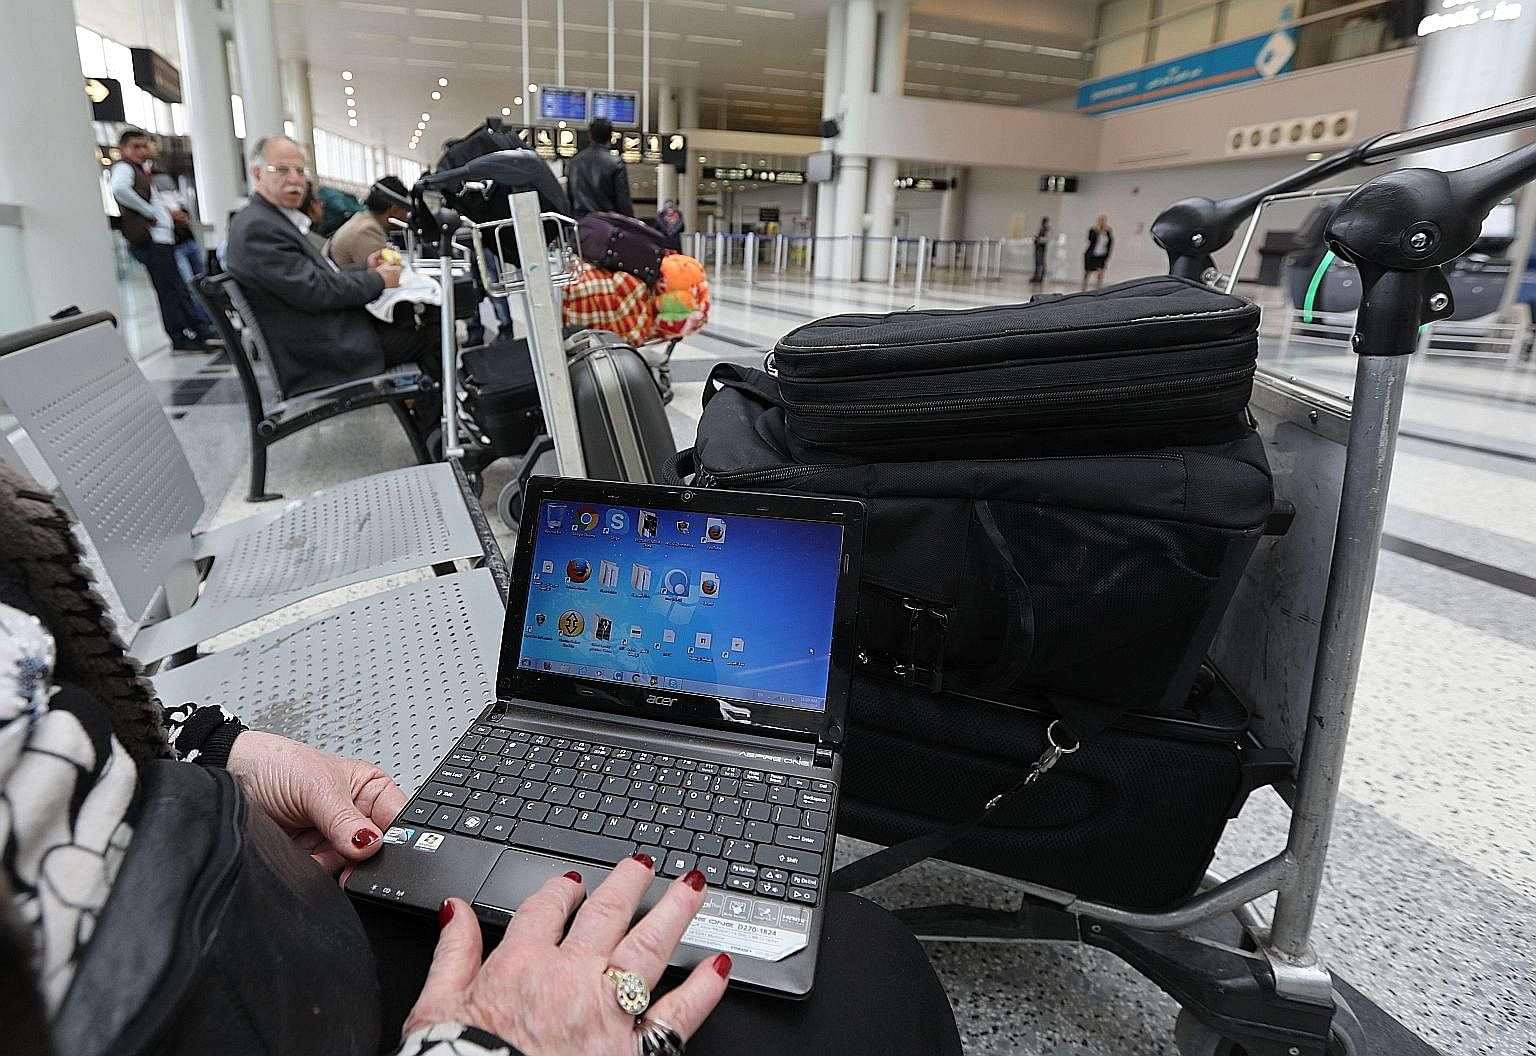 Last week, the US and Britain said they will stop travellers from taking into aircraft cabins large electronic devices such as bigger cameras, tablets and laptops, if they board from some countries in the Middle East and North Africa.